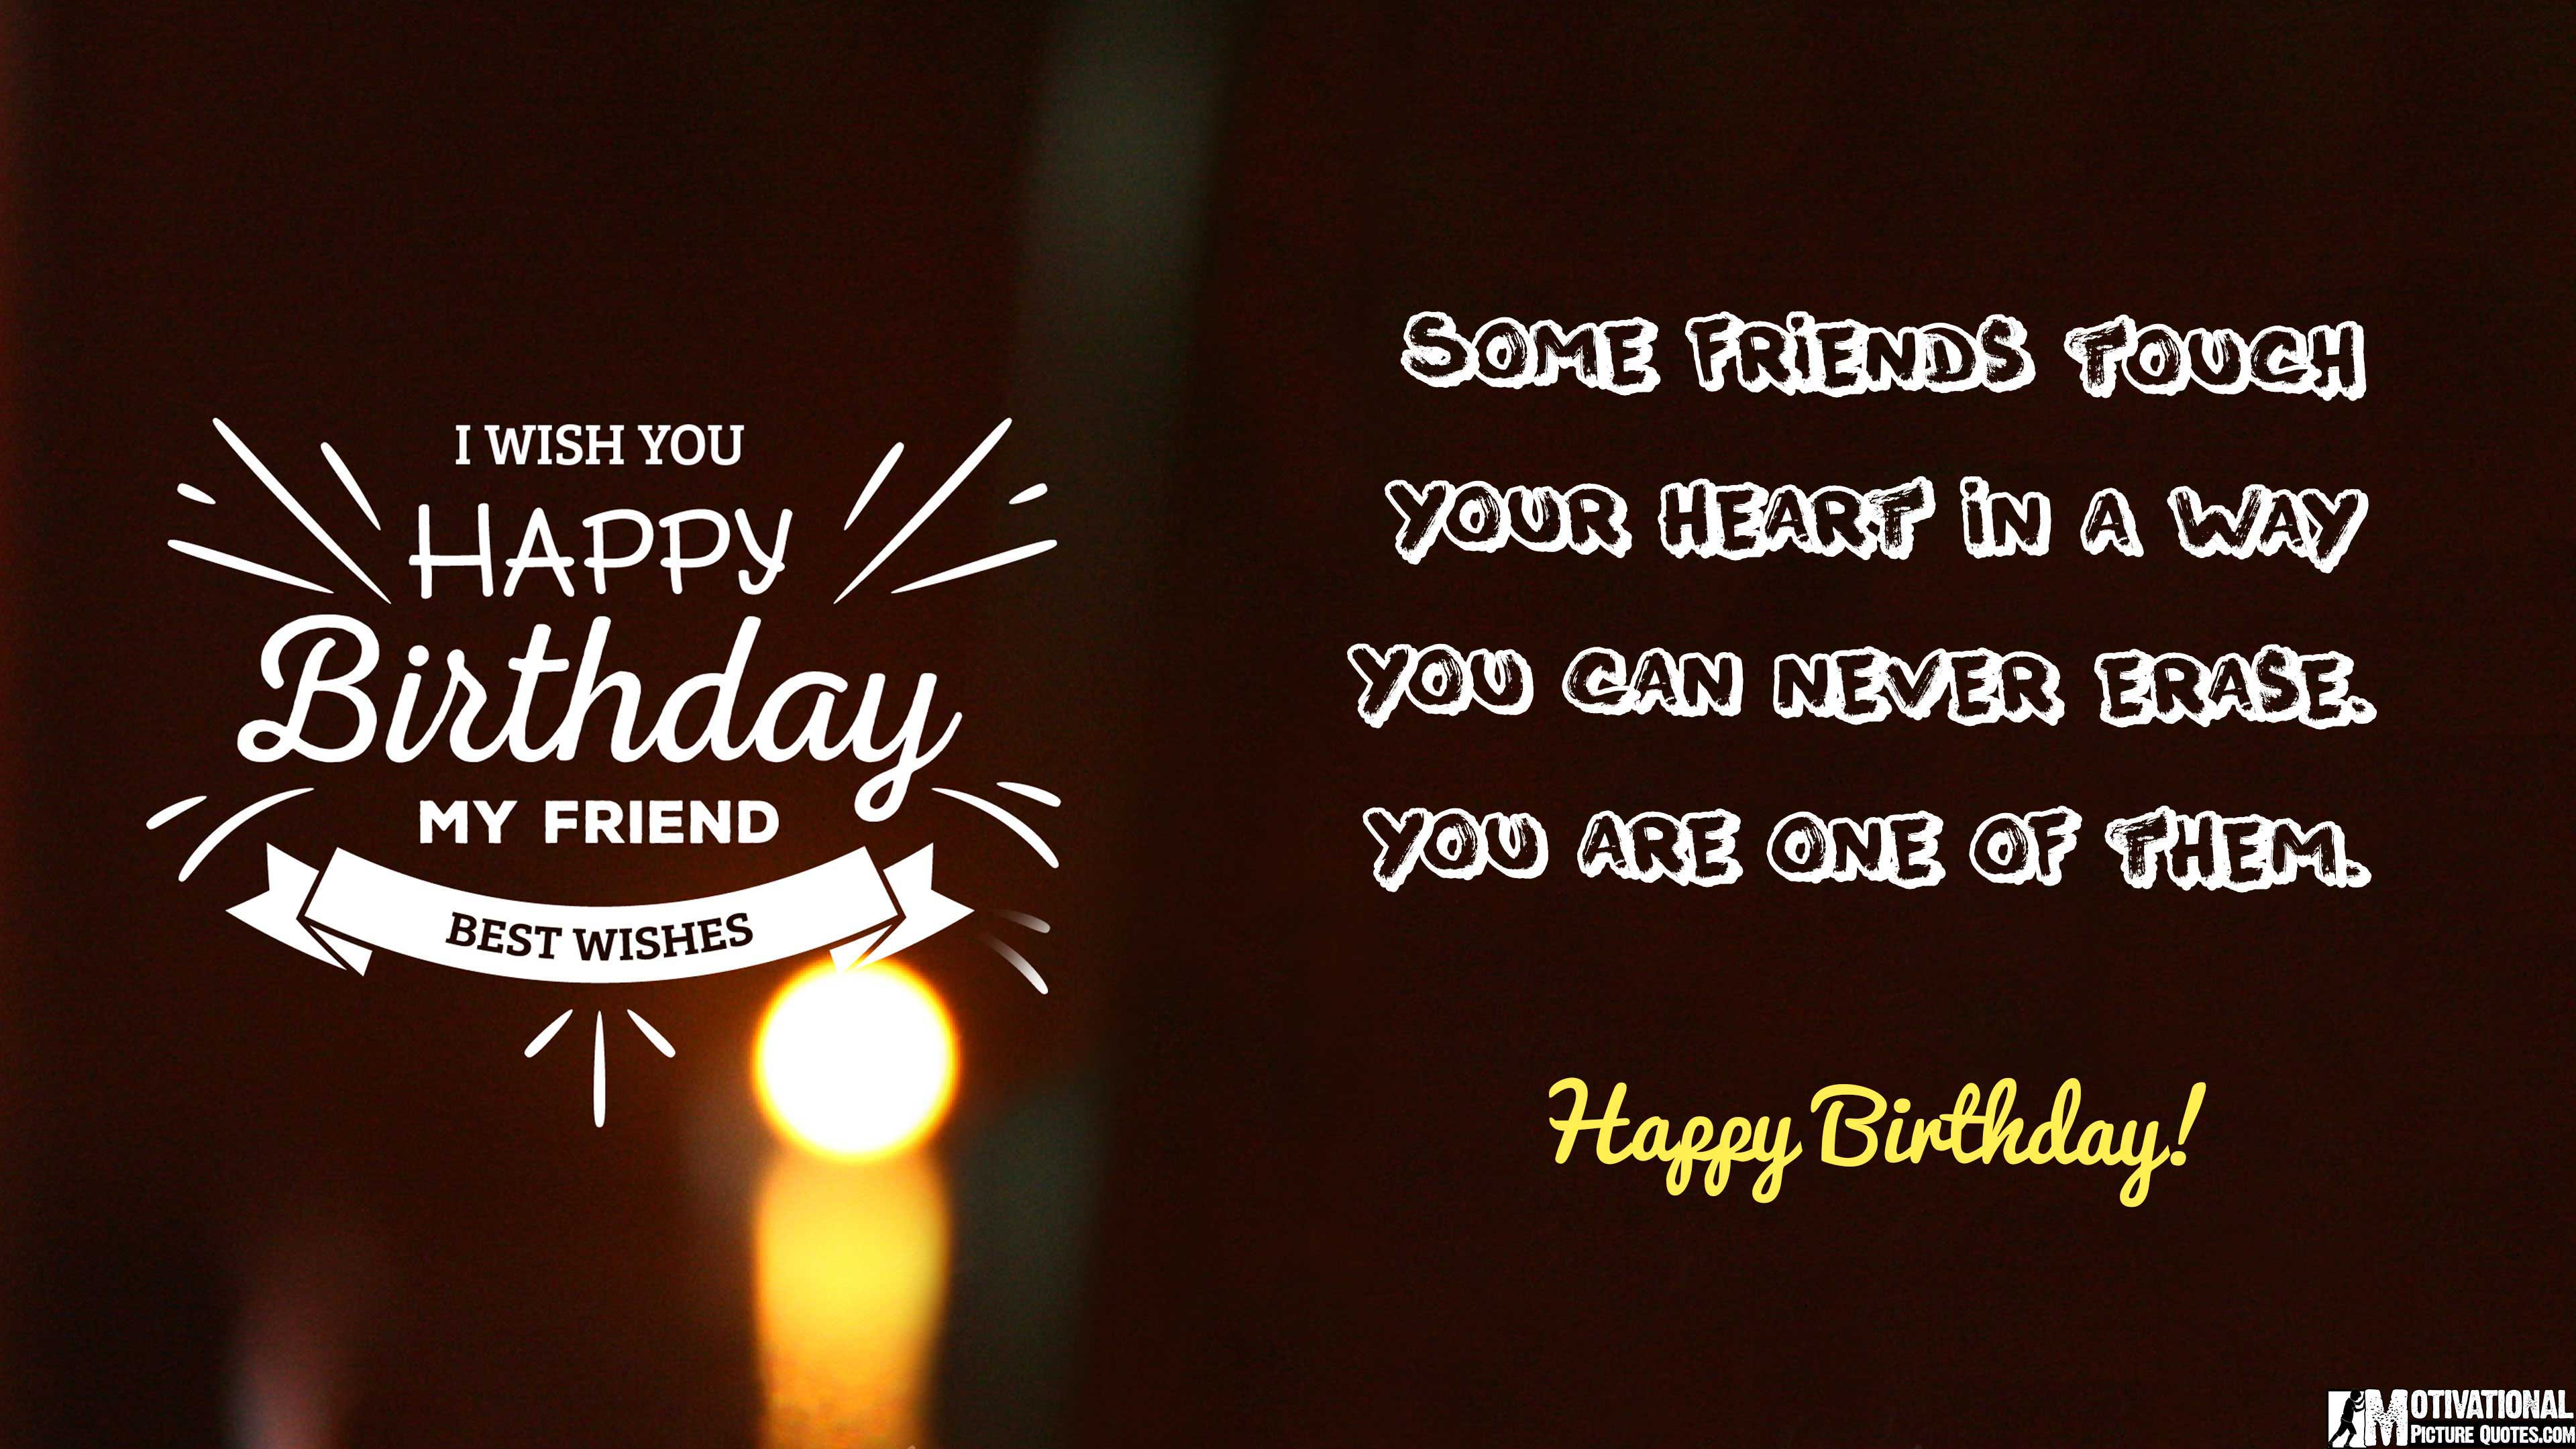 Superb Birthday Wishes Friend Birthday Quotes Images Insbright Ny Ways To Say Happy Birthday Reddit Ny Ways To Say Happy Birthday On A Cake gifts Funny Ways To Say Happy Birthday